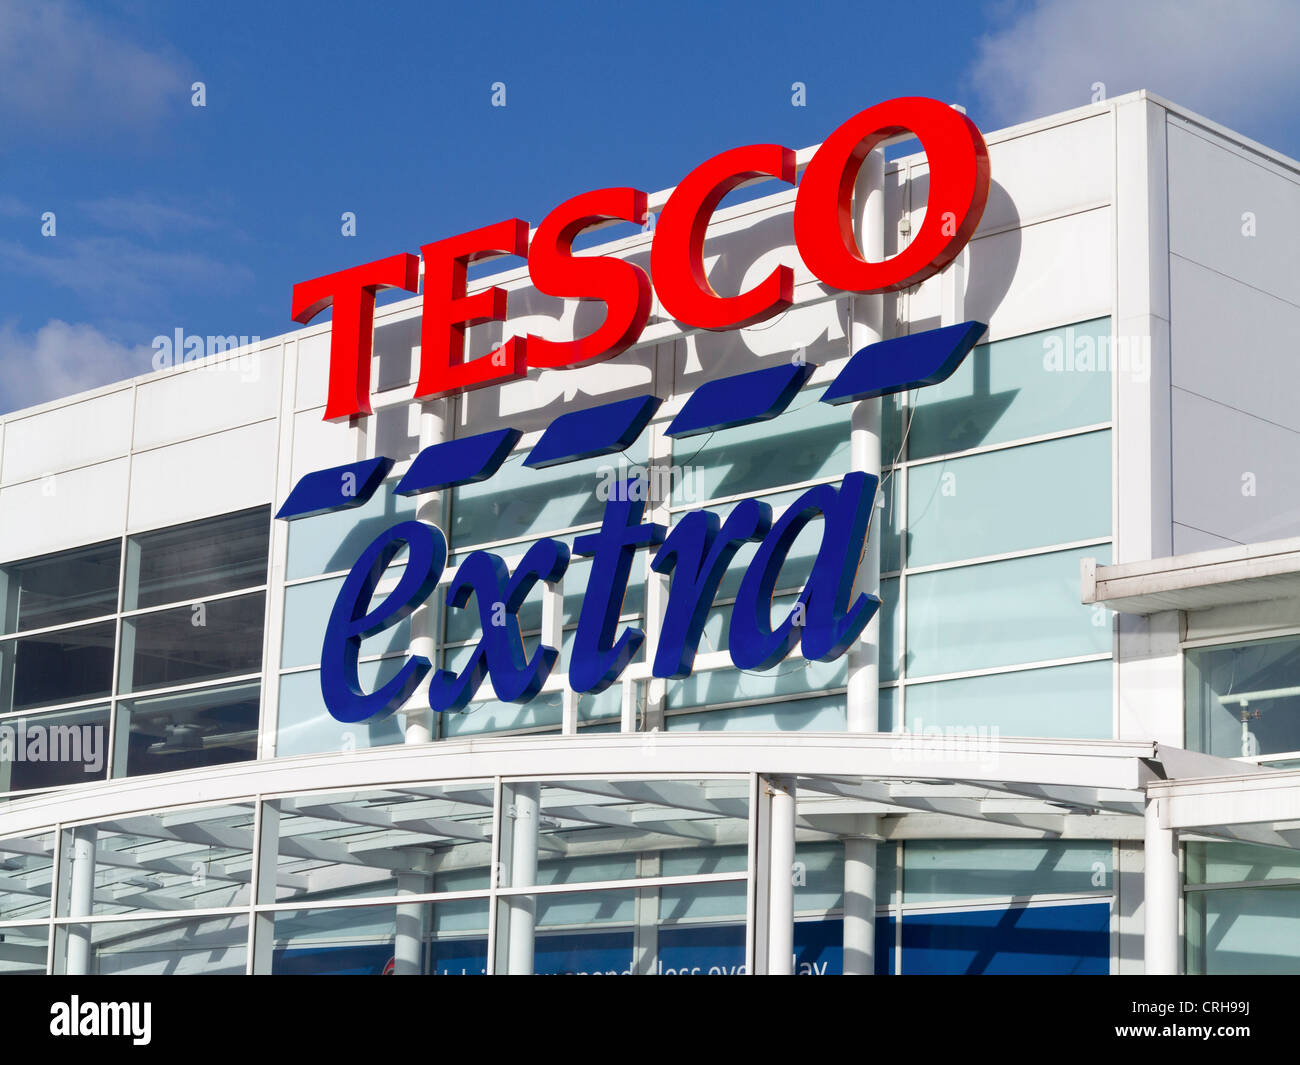 Tesco Extra store sign - Stock Image